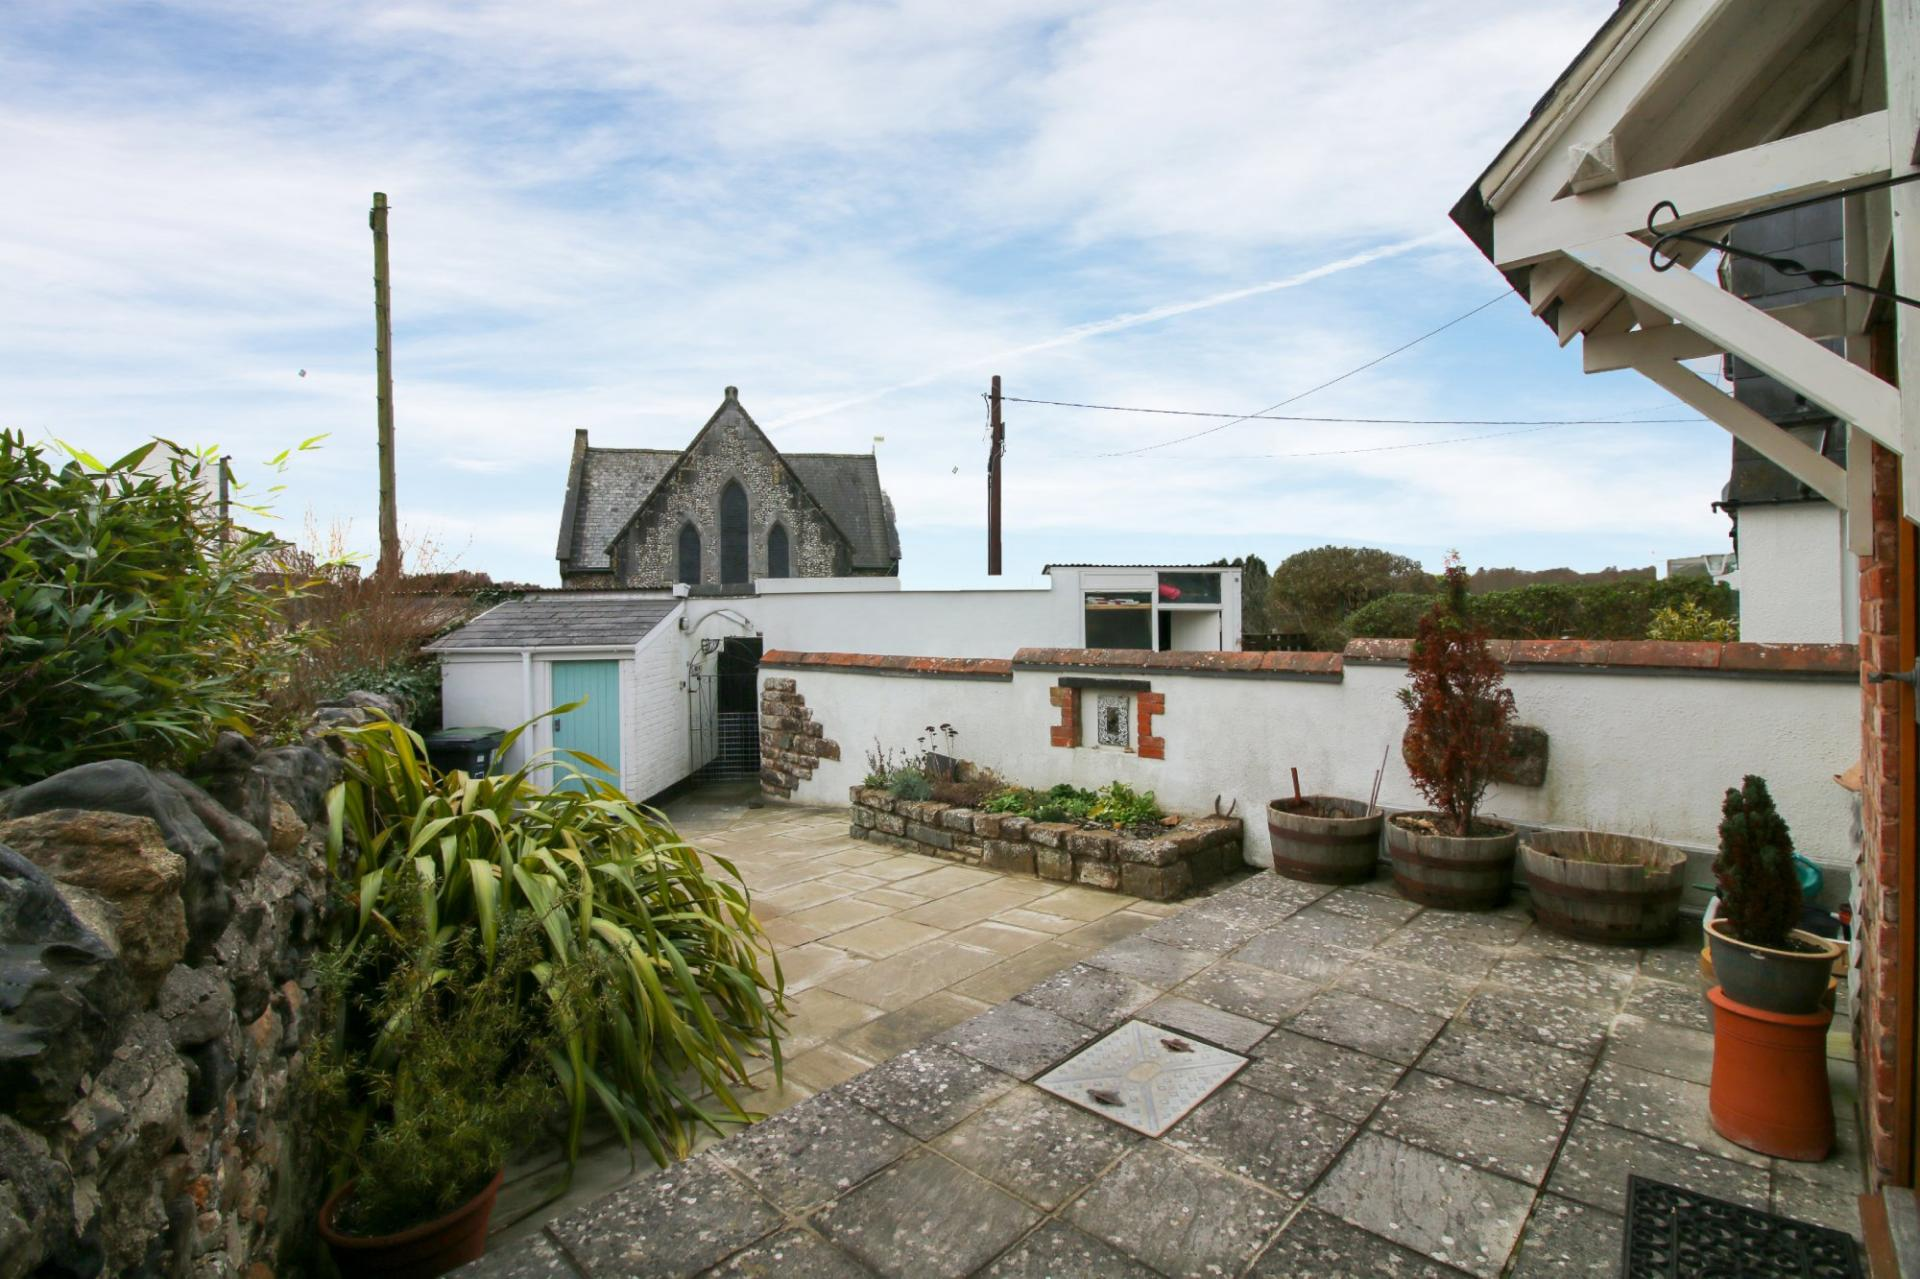 Property For Sale In Chudleigh Knighton